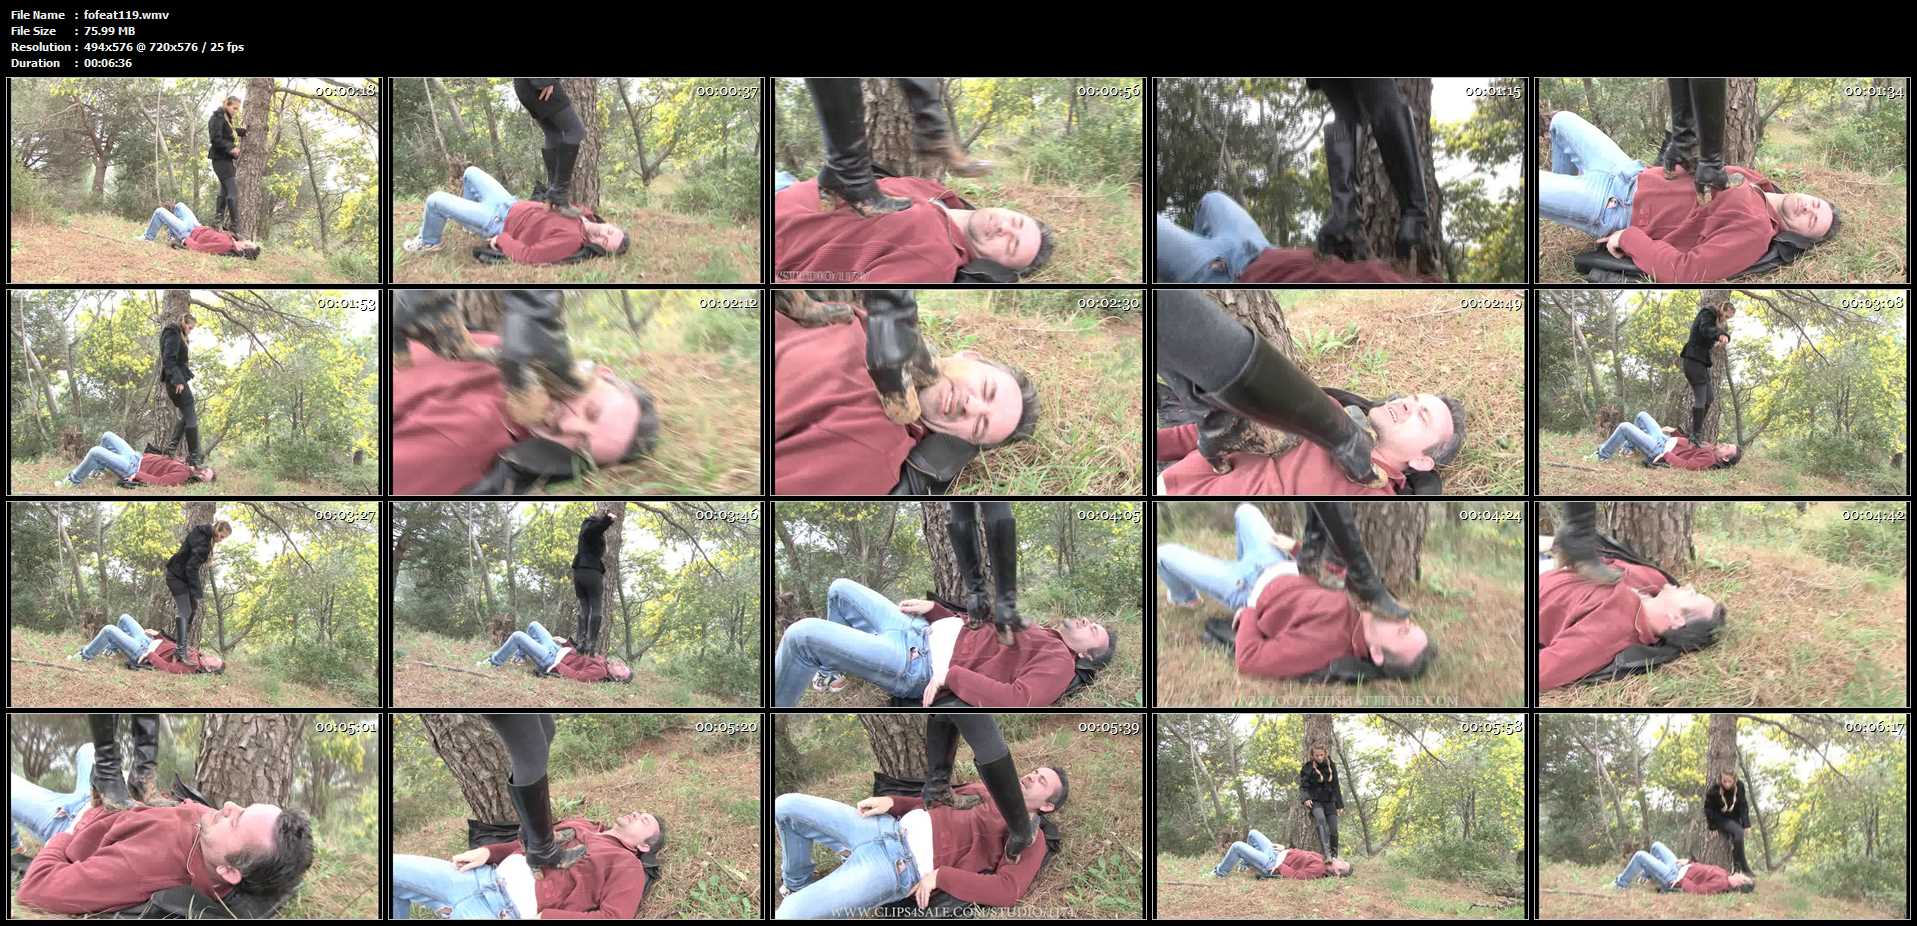 Mistress Francesca In Scene: High heel Muddy boots trample - FOOTFETISHATTITUDE - SD/576p/WMV